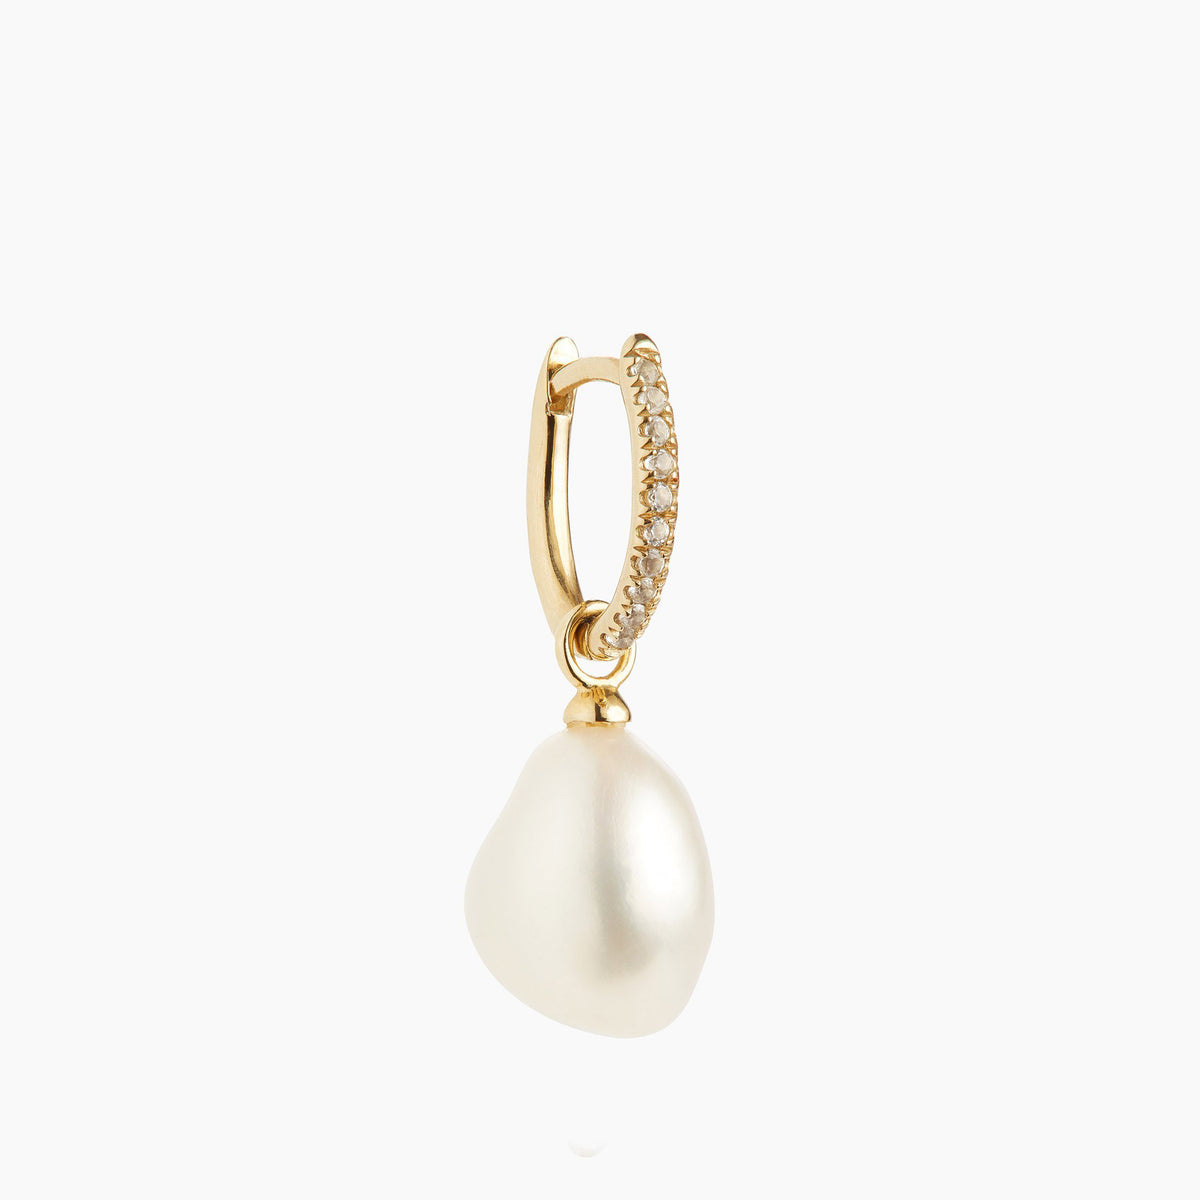 Mini Oval with White Topaz & Simple Pearl Charm